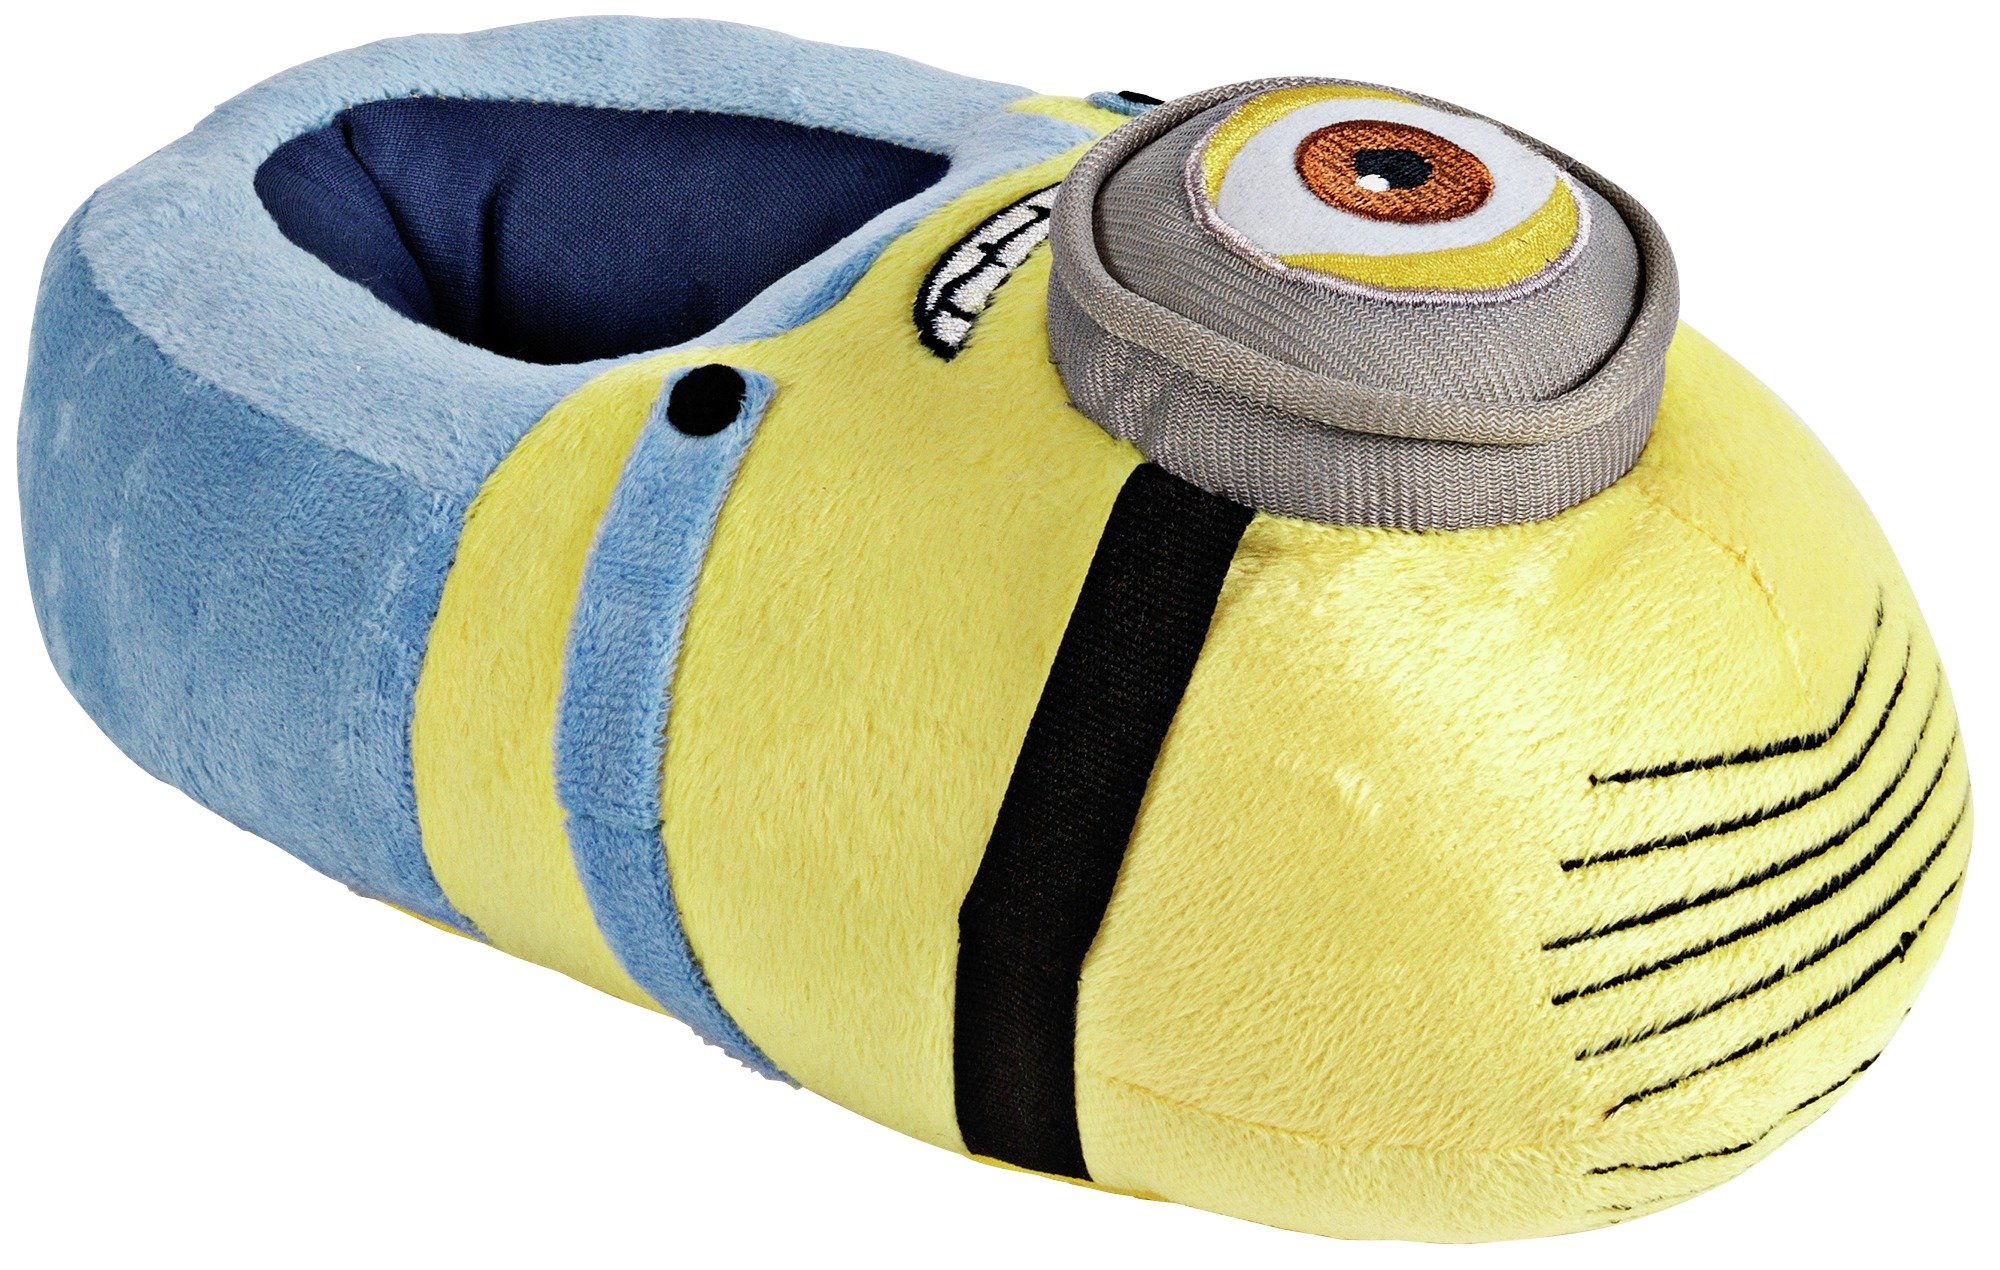 Image of Minions Novelty Dave Slippers - Size 11